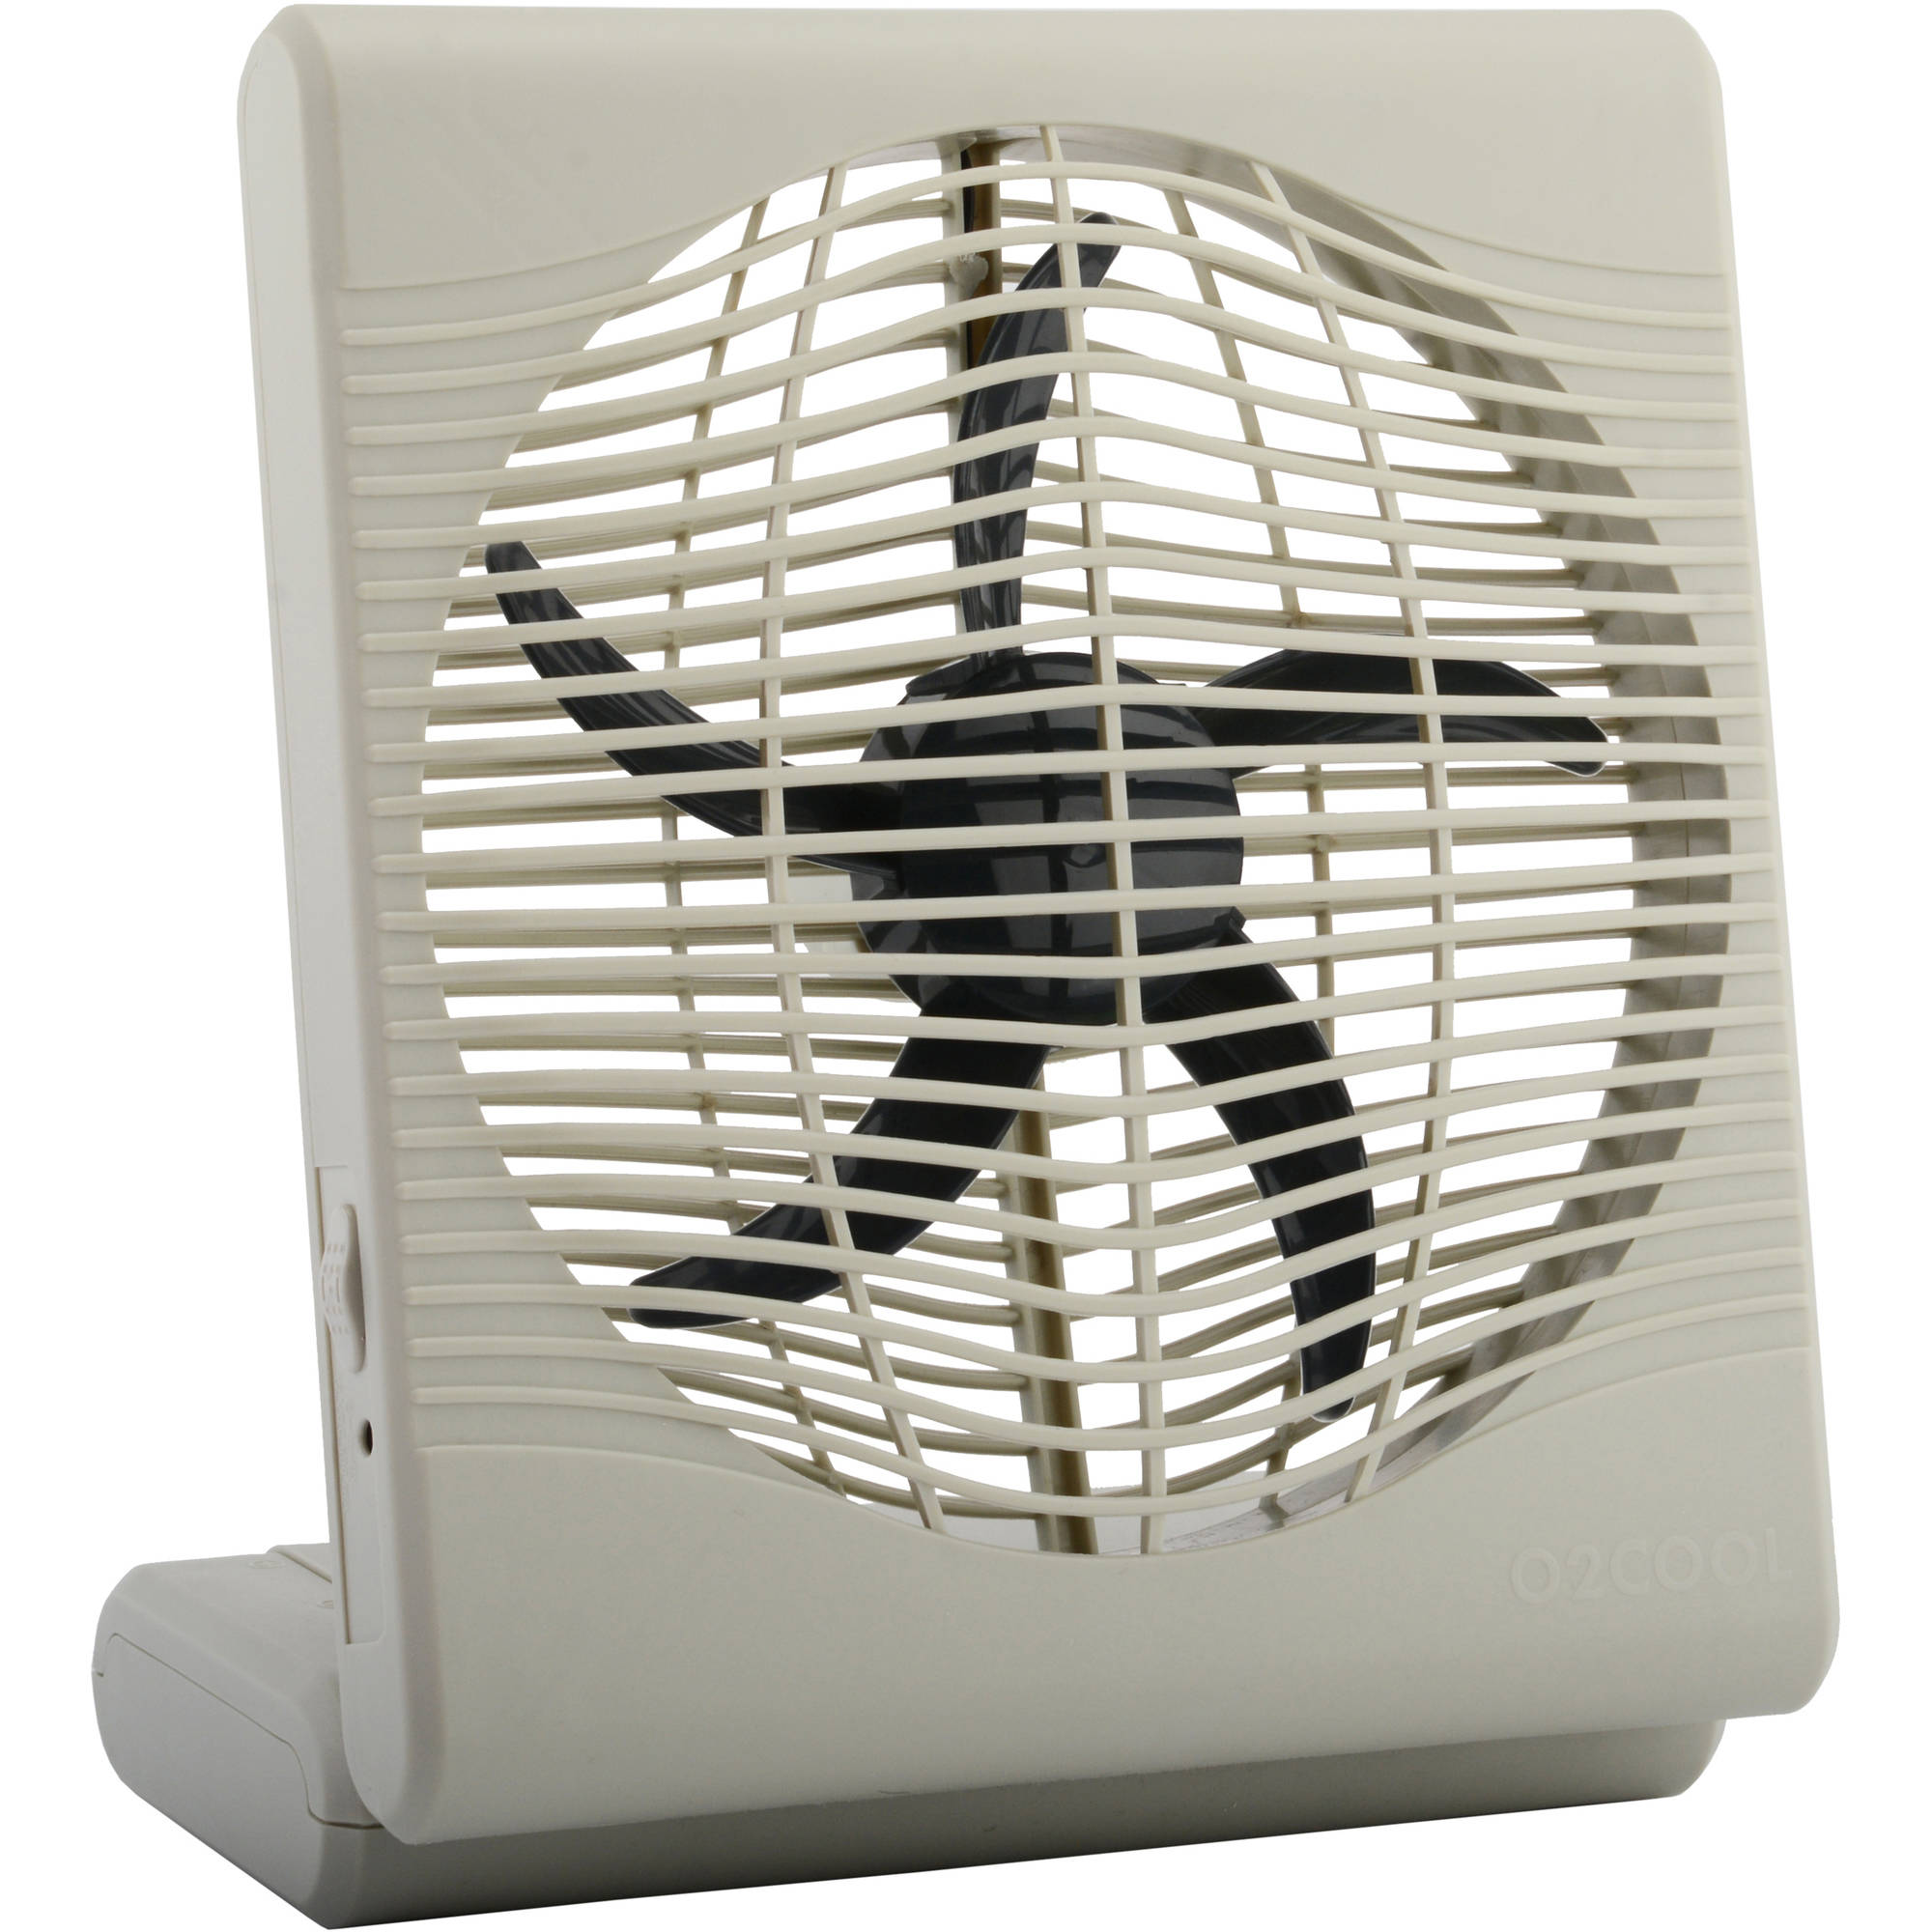 "O2COOL 8"" Portable Slipstream Fan"